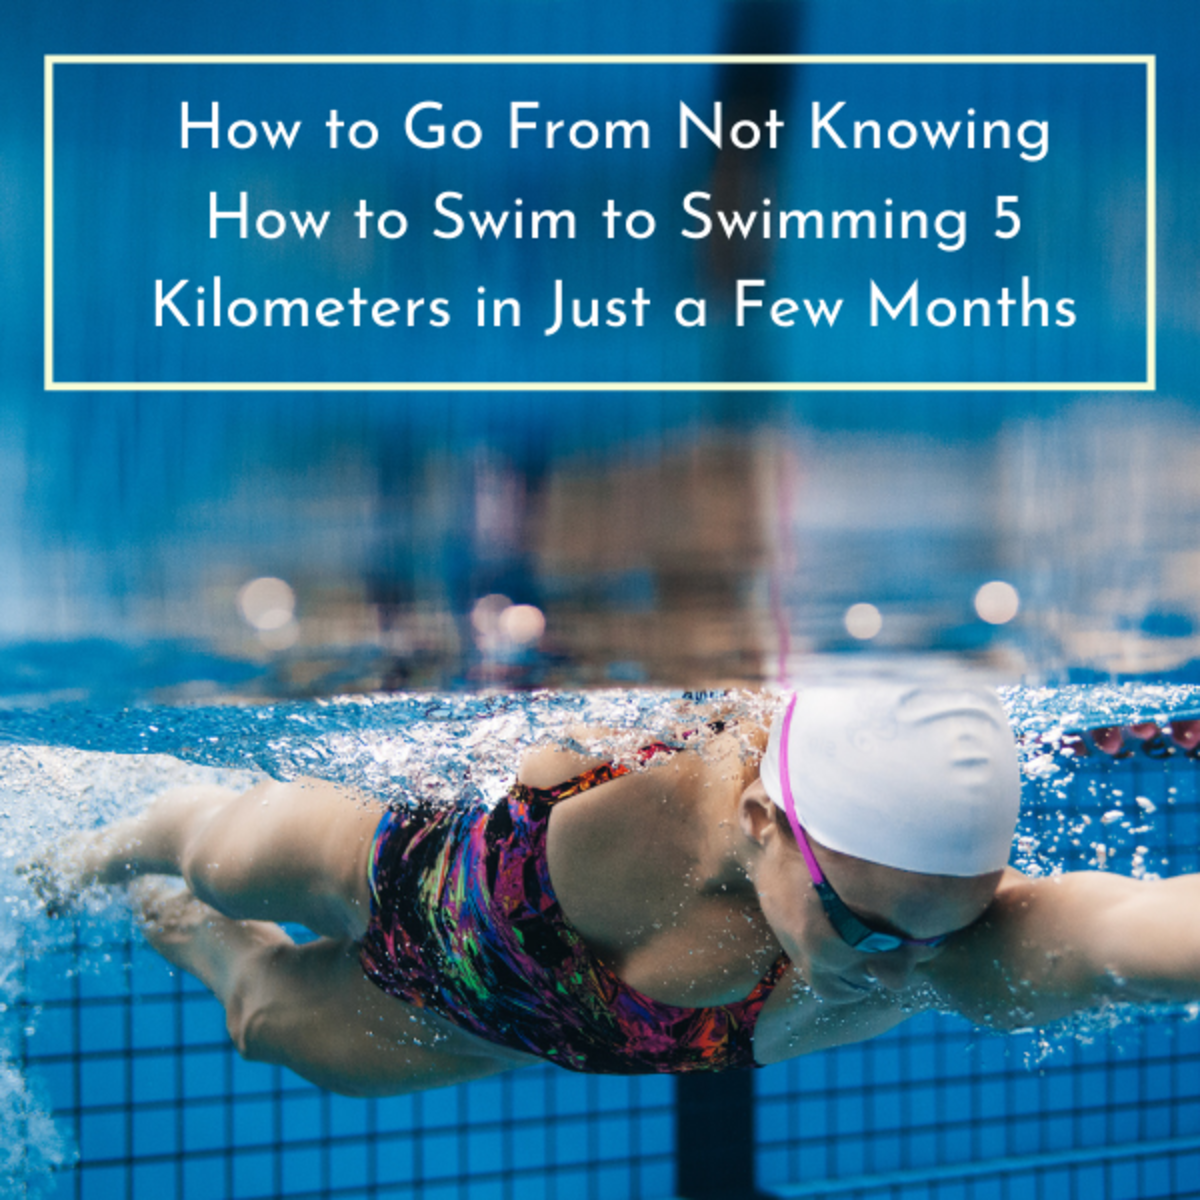 How to Go From Not Knowing How to Swim to Swimming 5 Kilometers in Just a Few Months